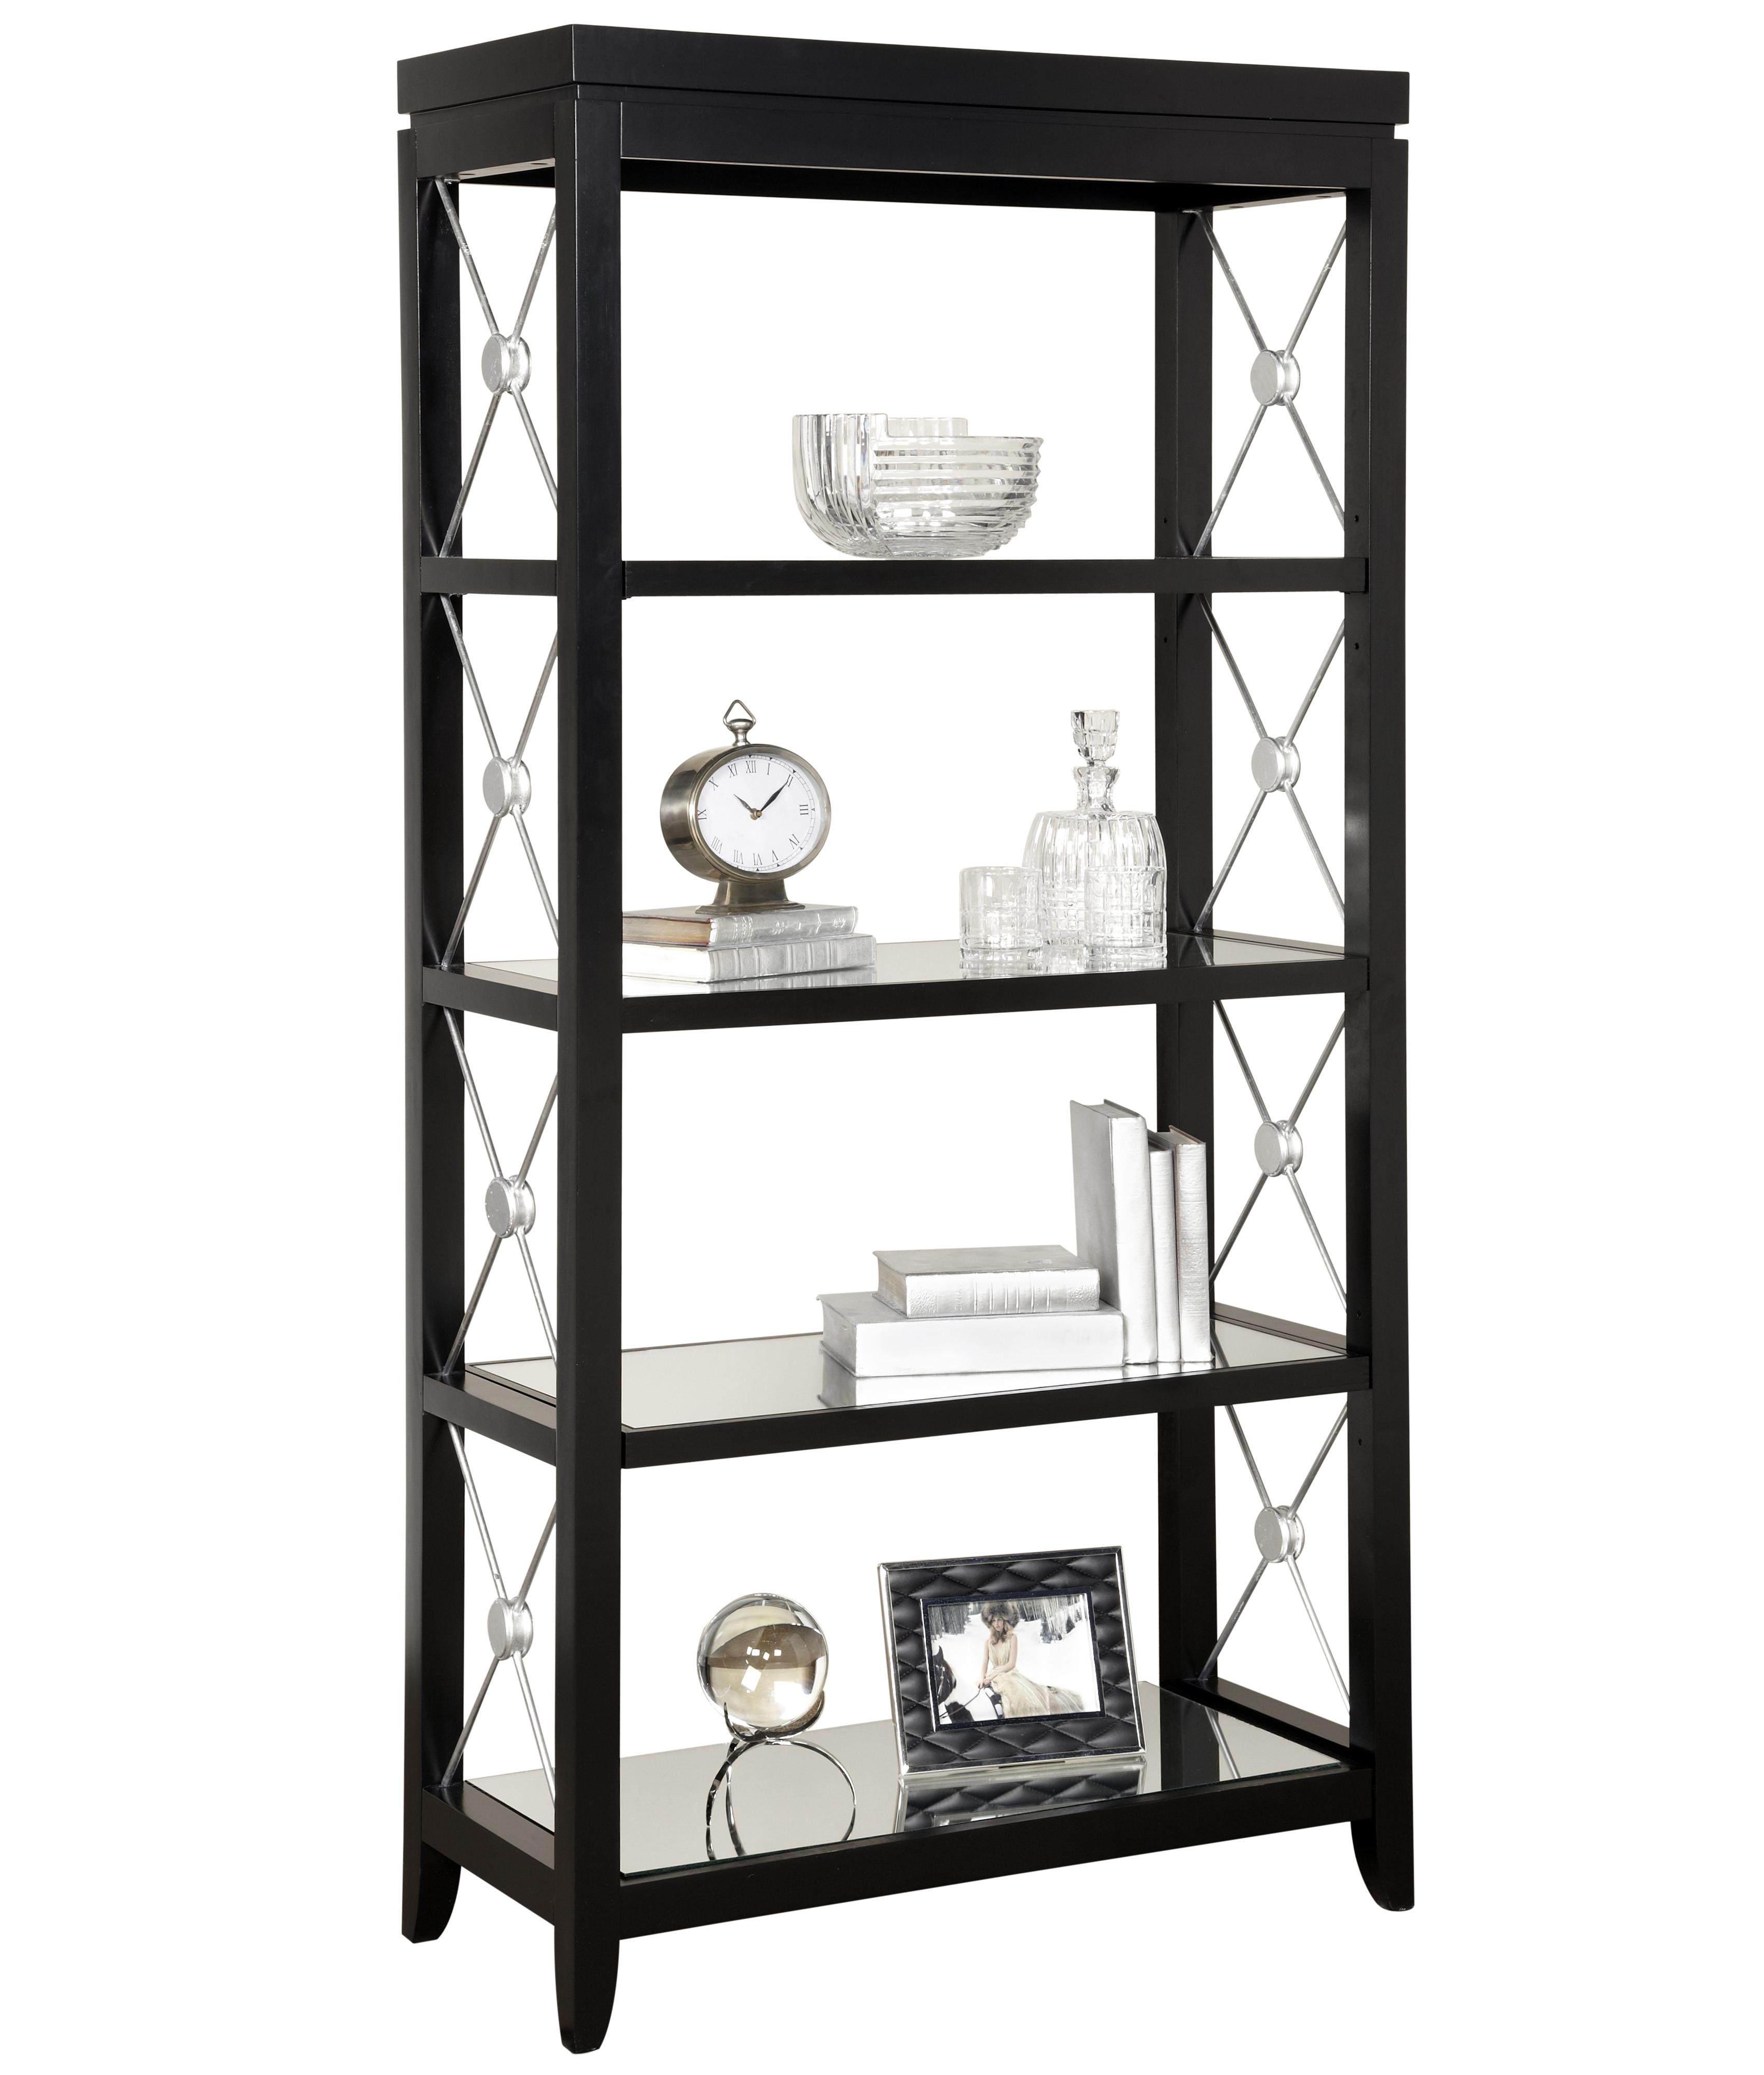 pulaski furniture accents trenton finish etagere with mirrored shelves and decorative metal x. Black Bedroom Furniture Sets. Home Design Ideas